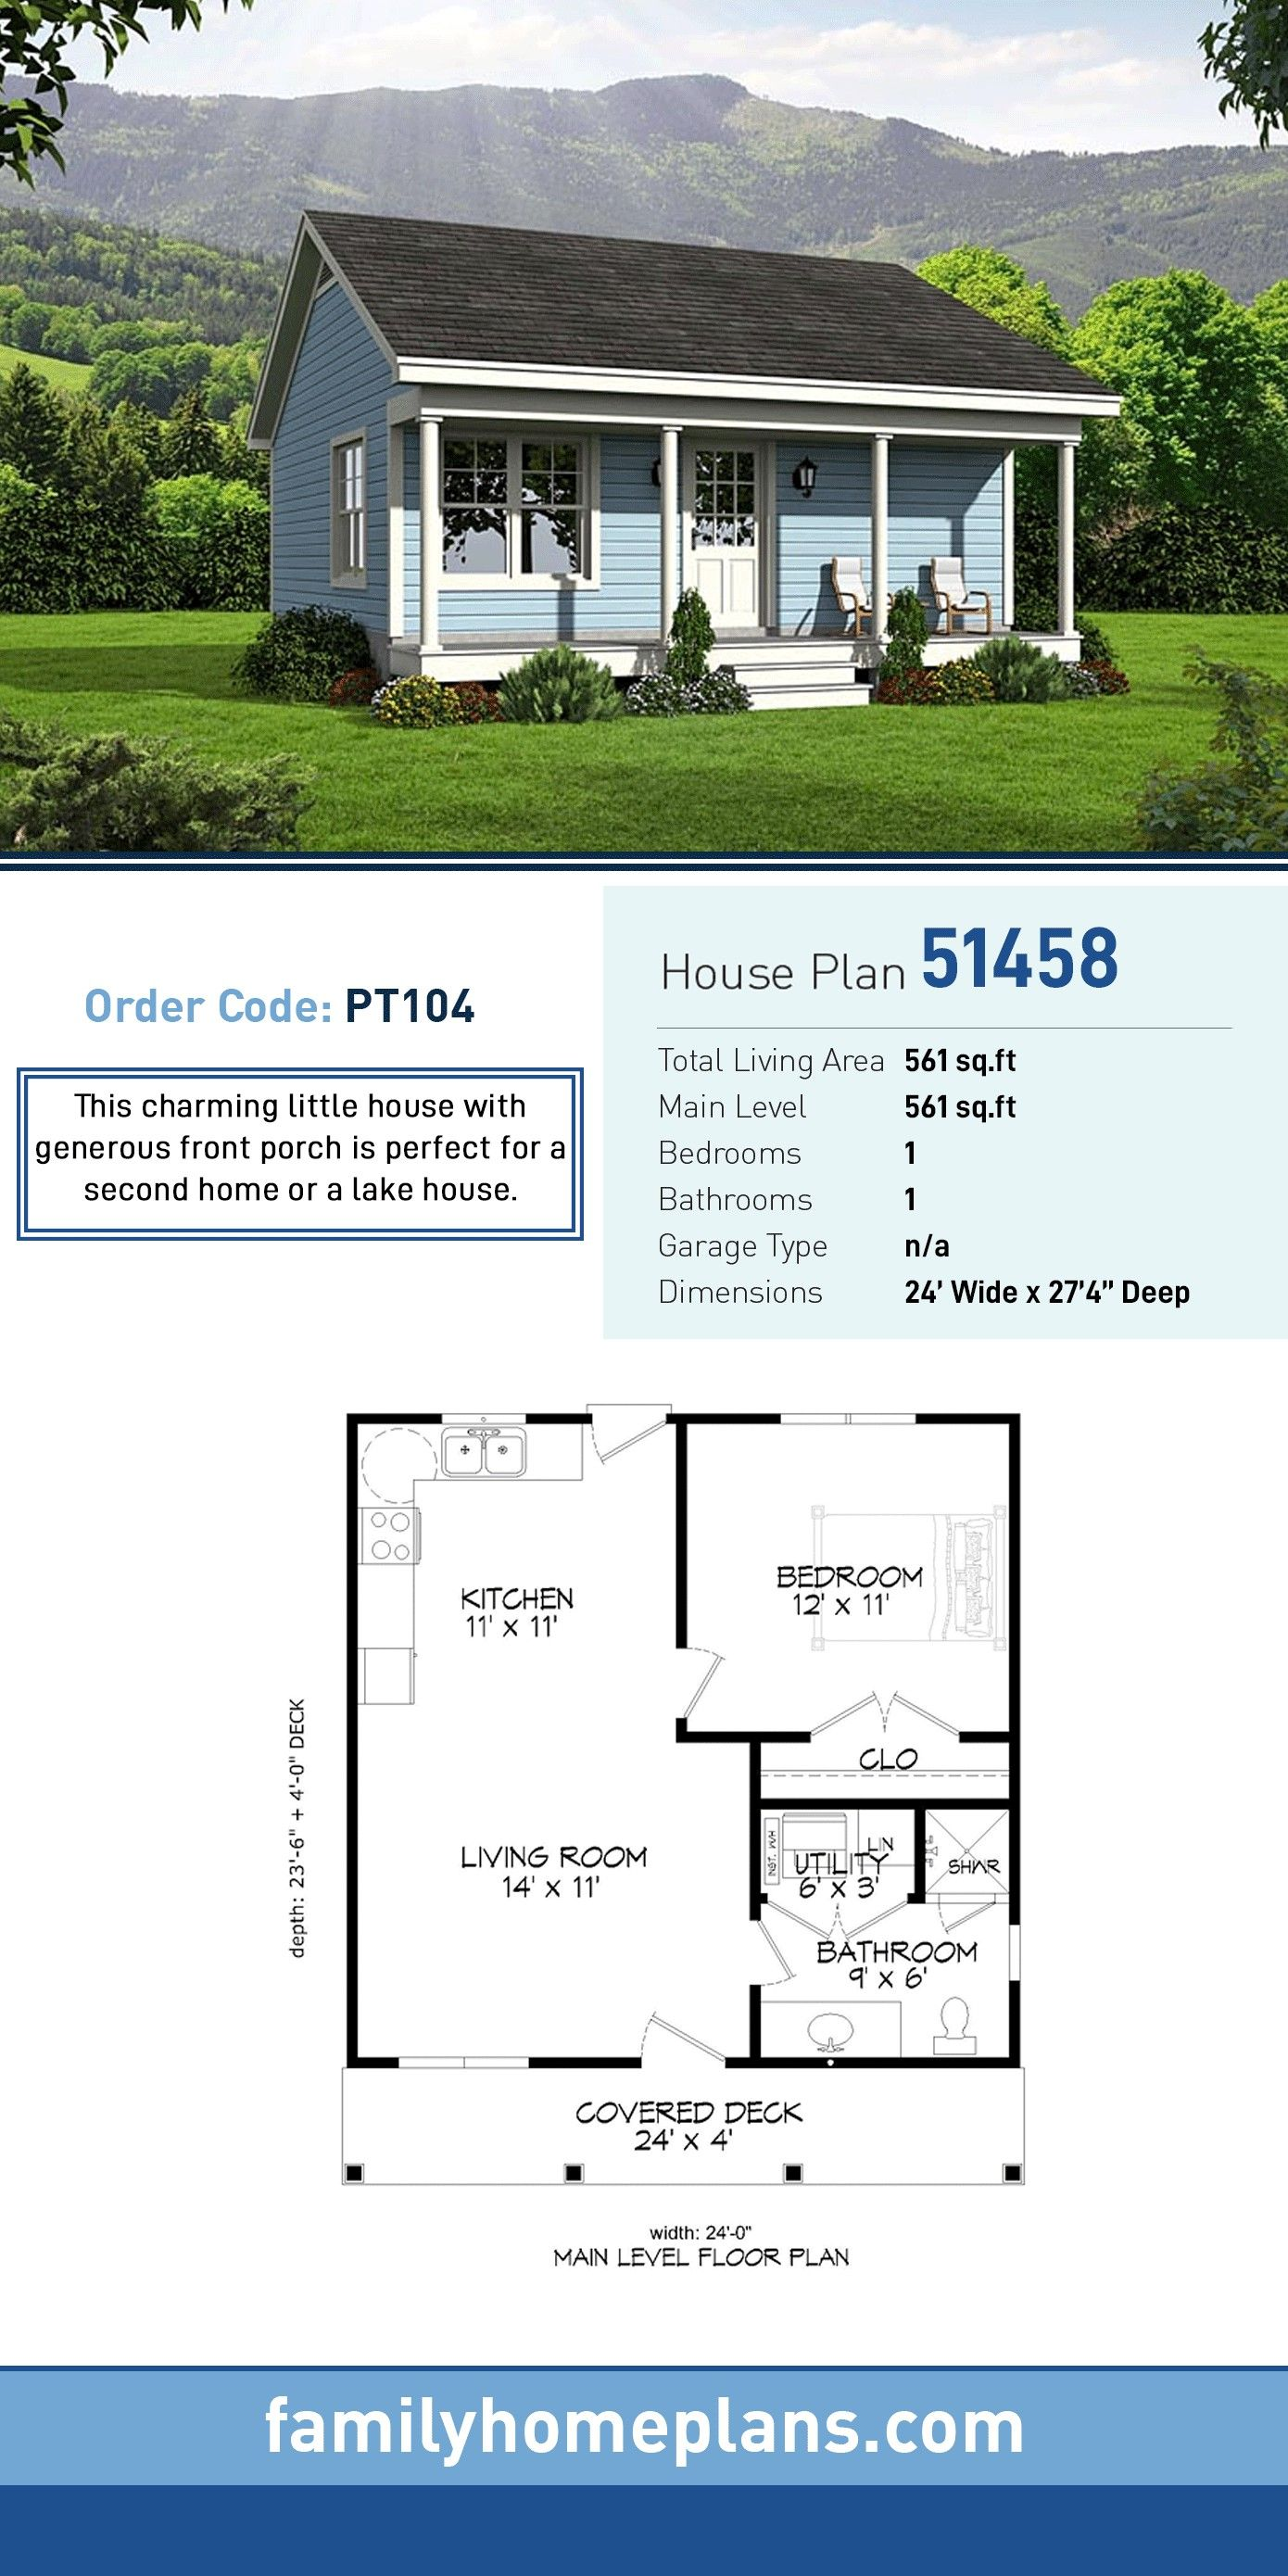 Tiny House Plan 51458 Total Living Area 561 Sq Ft 1